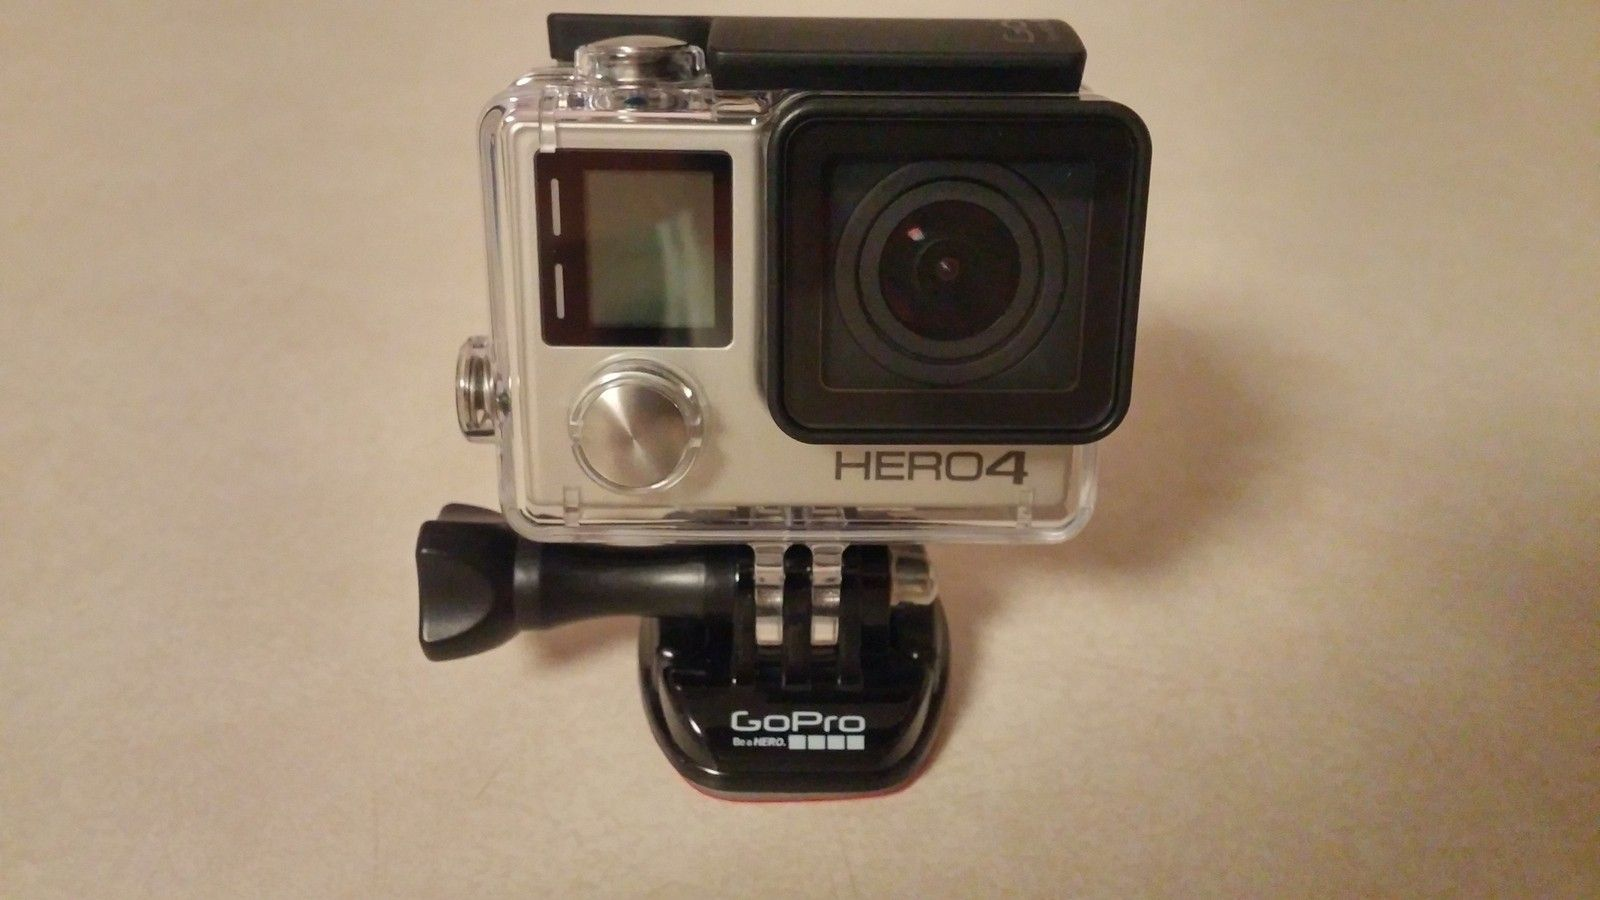 new toy - 20151226_184234_HDR.jpg